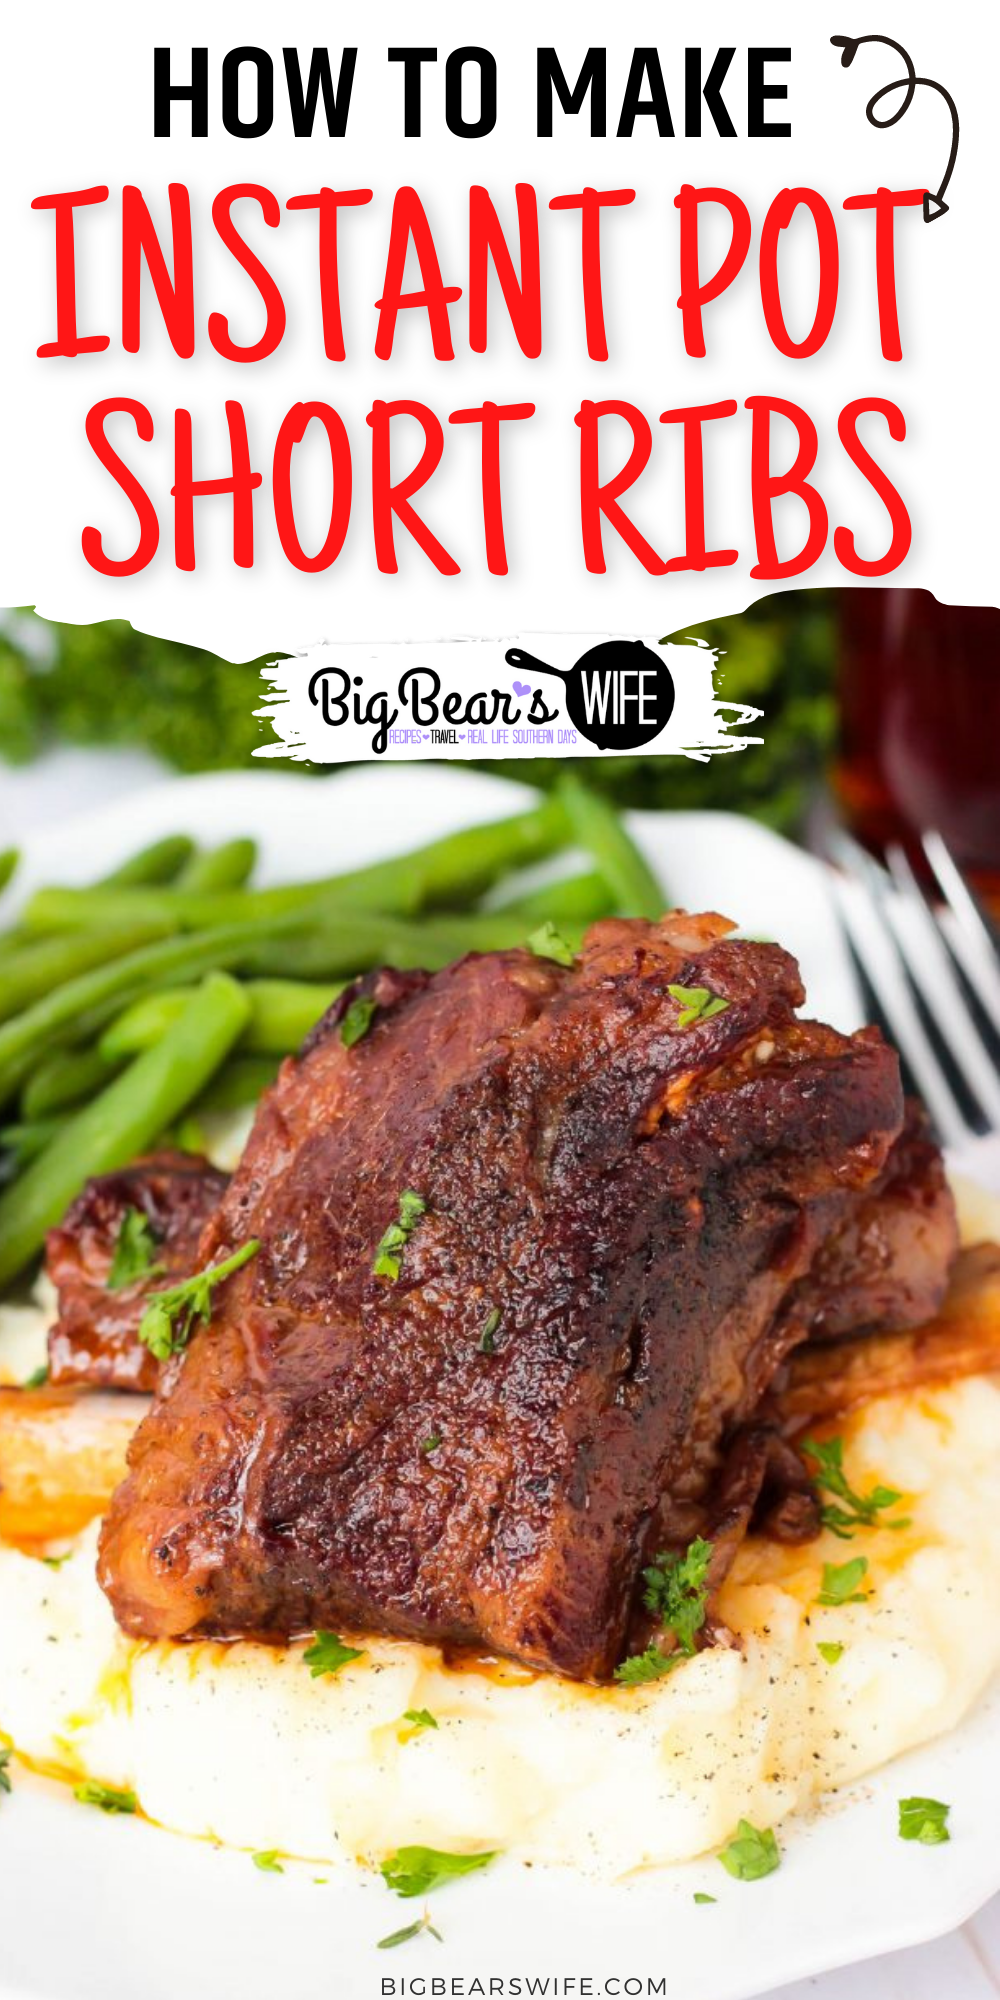 Instant Pot Short Ribs - TheseInstant Pot Short Ribs are my super tender and packed with tons of wonderful flavor! This recipe is my new version of my super popular Slow Cooker Short Rib recipe that I've adapted to work with the Instant Pot electric pressure cooker! #InstantPot #ShortRib #Recipe via @bigbearswife